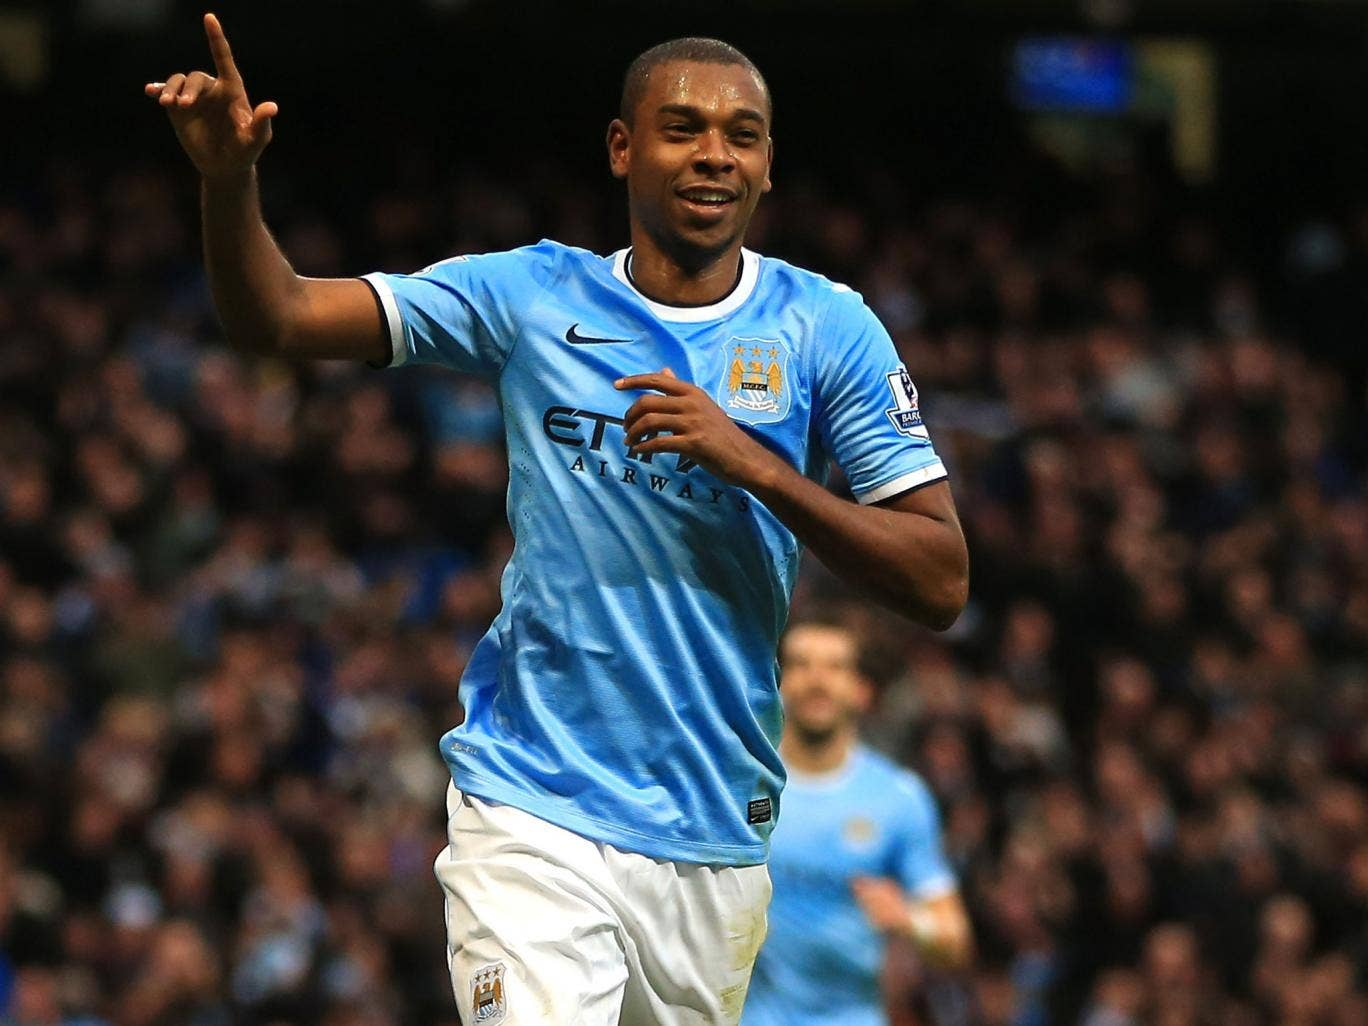 Fernandinho has settled in well at Manchester City, the Brazilian scoring twice in the 6-3 win over Arsenal in December